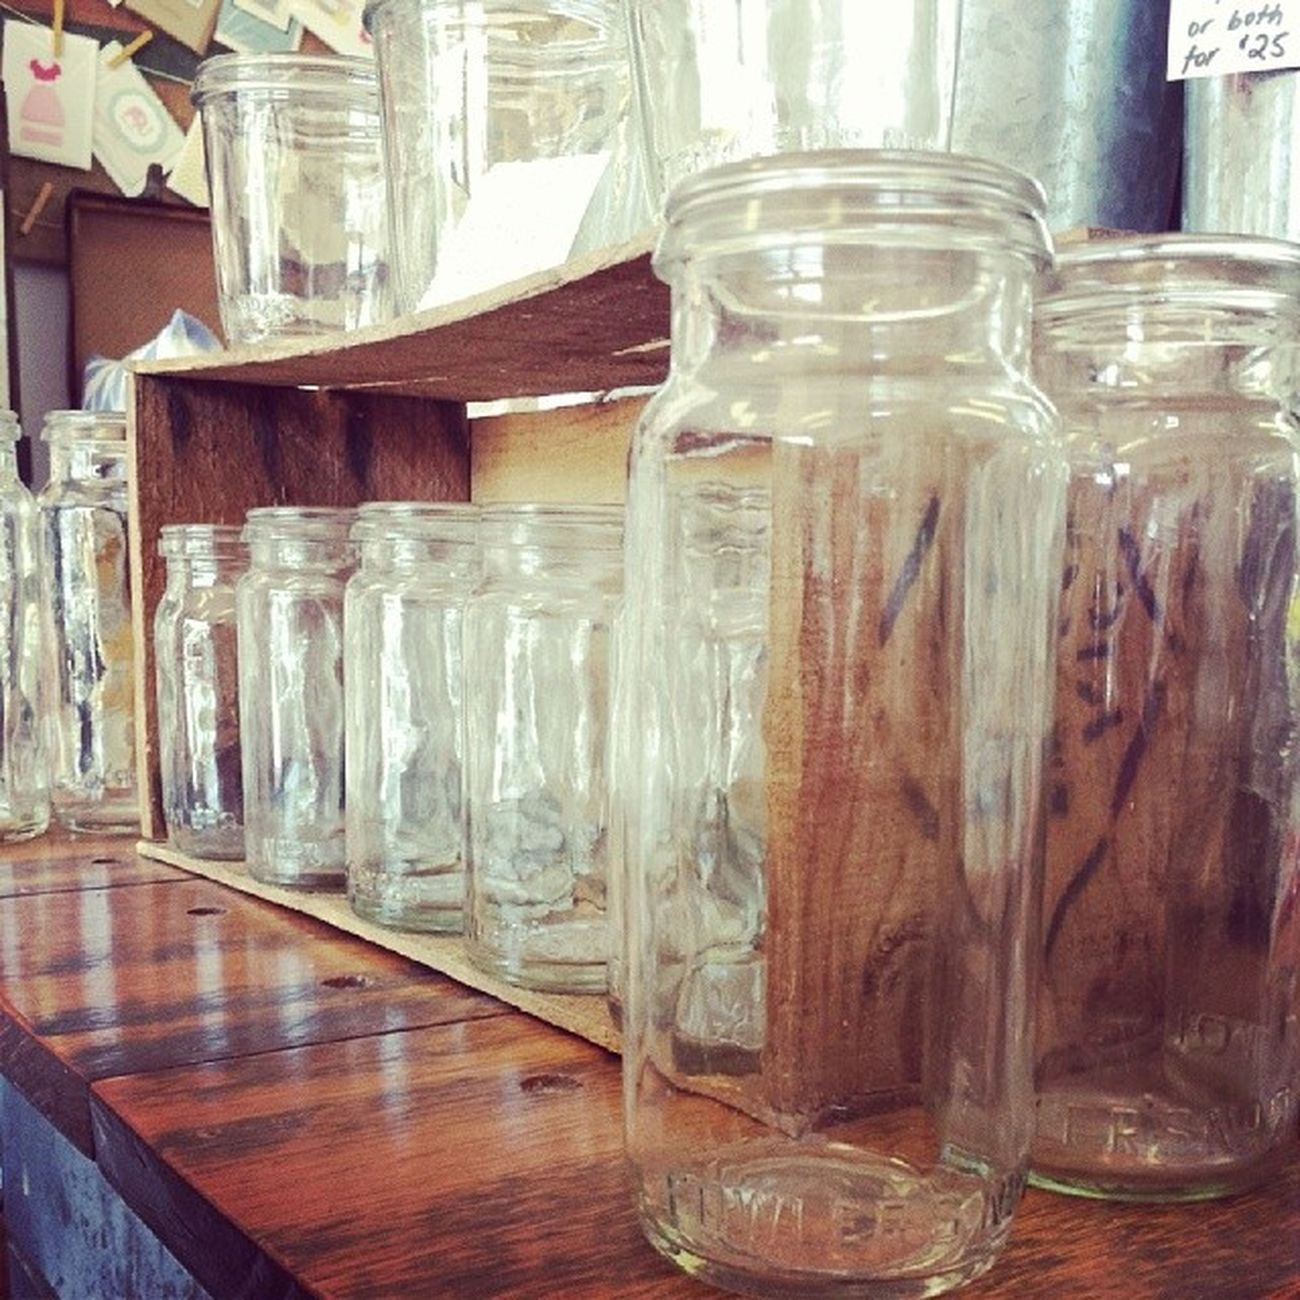 Fowlers jars no. 20 27 & 28. Fowlers Morningtonpeninsula Manyuses